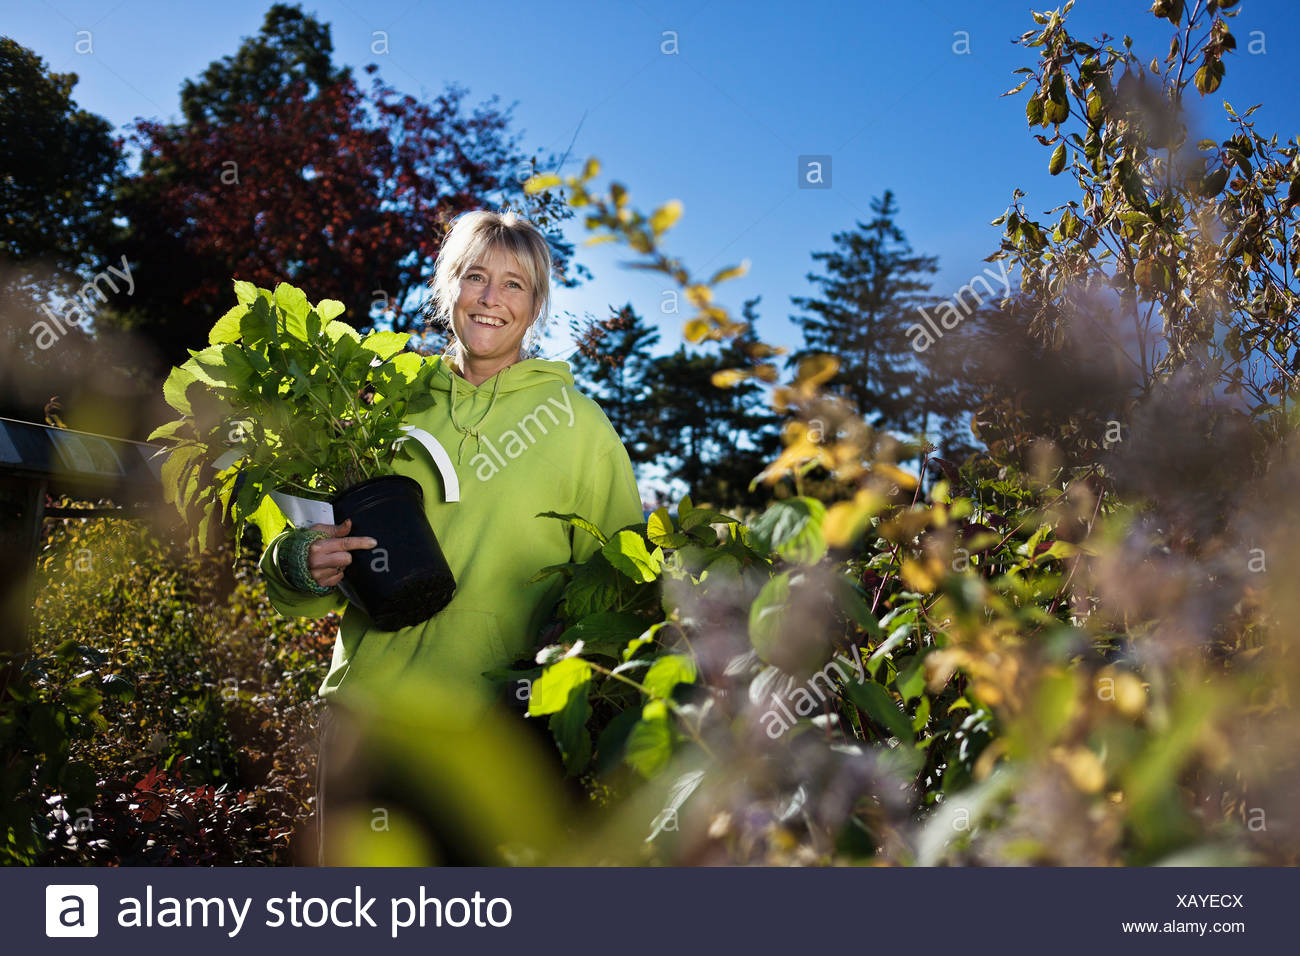 Mid adult woman gardening - Stock Image